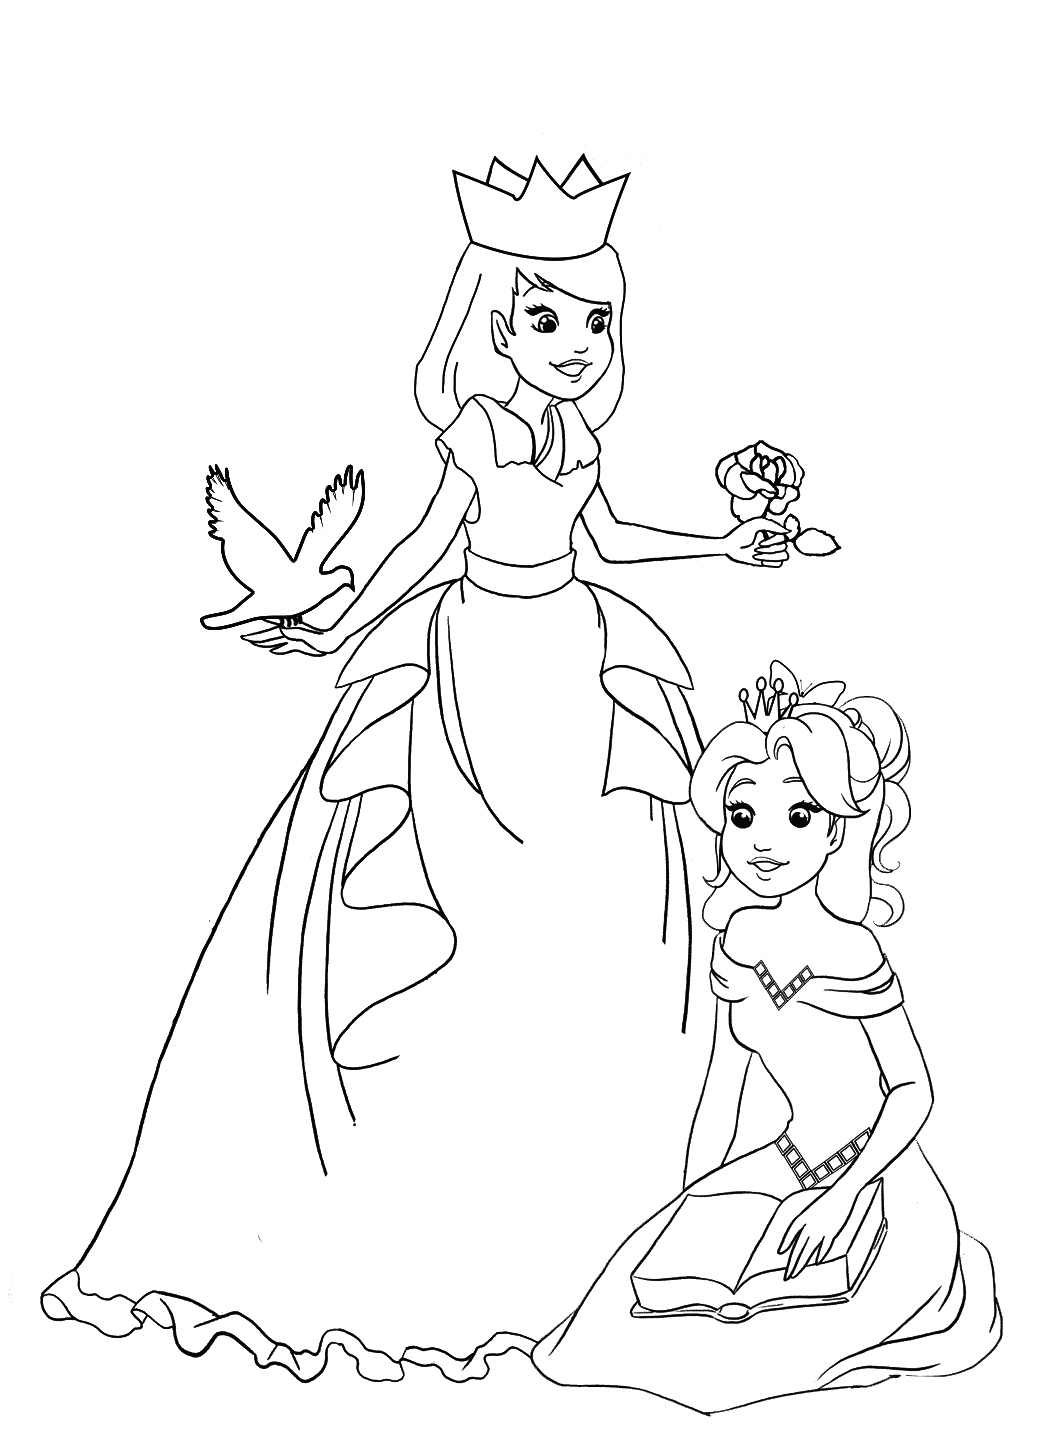 Coloring princess pictures - You Can Use These Coloring Princess Pages As Much As You Like As Long As You Follow The Two Simple Rules For Using My Material That You Can Find On